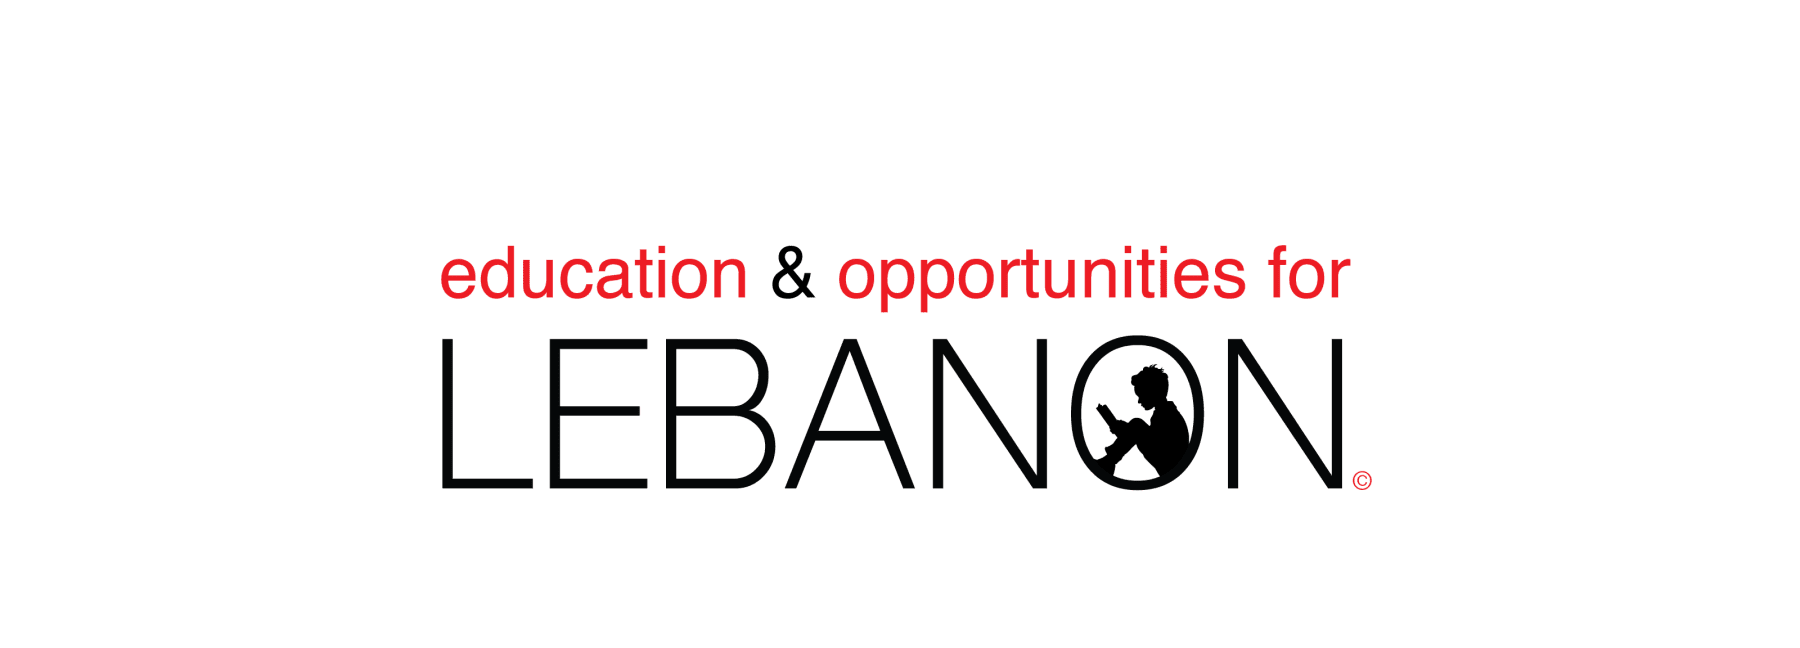 Text logo for Education and Opportunities for Lebanon.